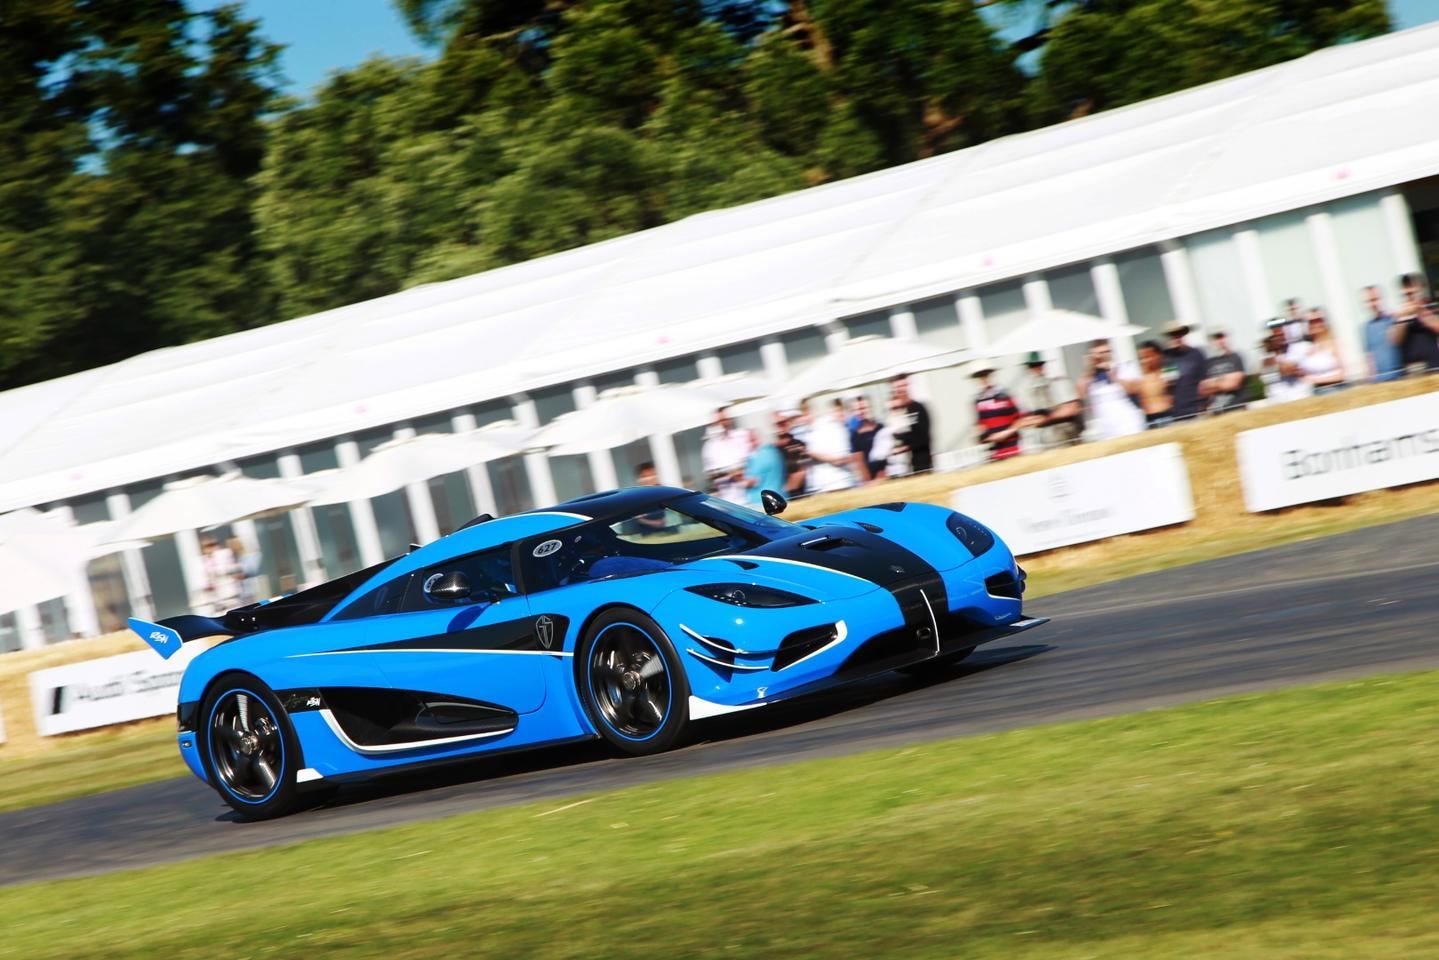 The Koenigsegg Agera RSN